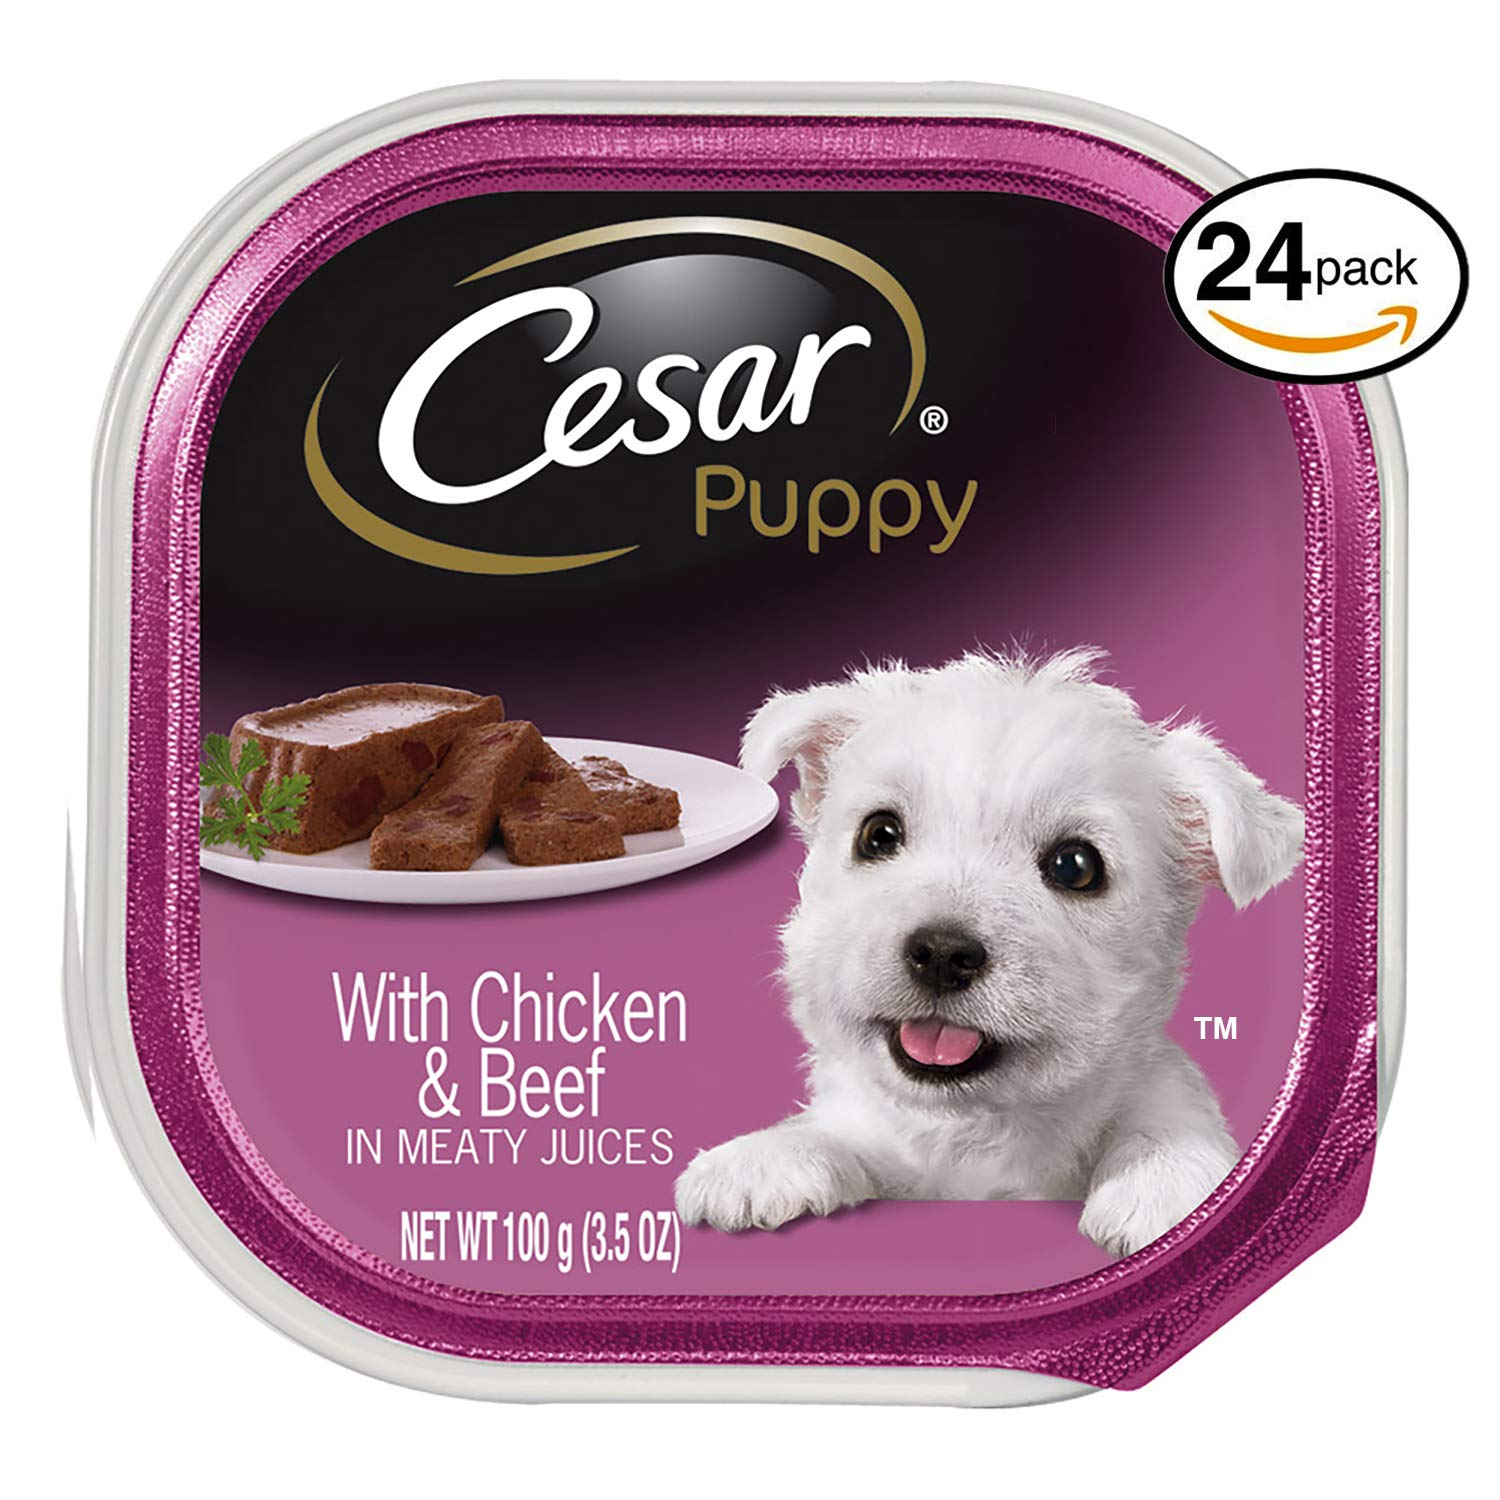 Cesar CANINE CUISINE Puppy Wet Dog Food with Chicken and Beef, (Pack of 24) 3.5 oz Trays